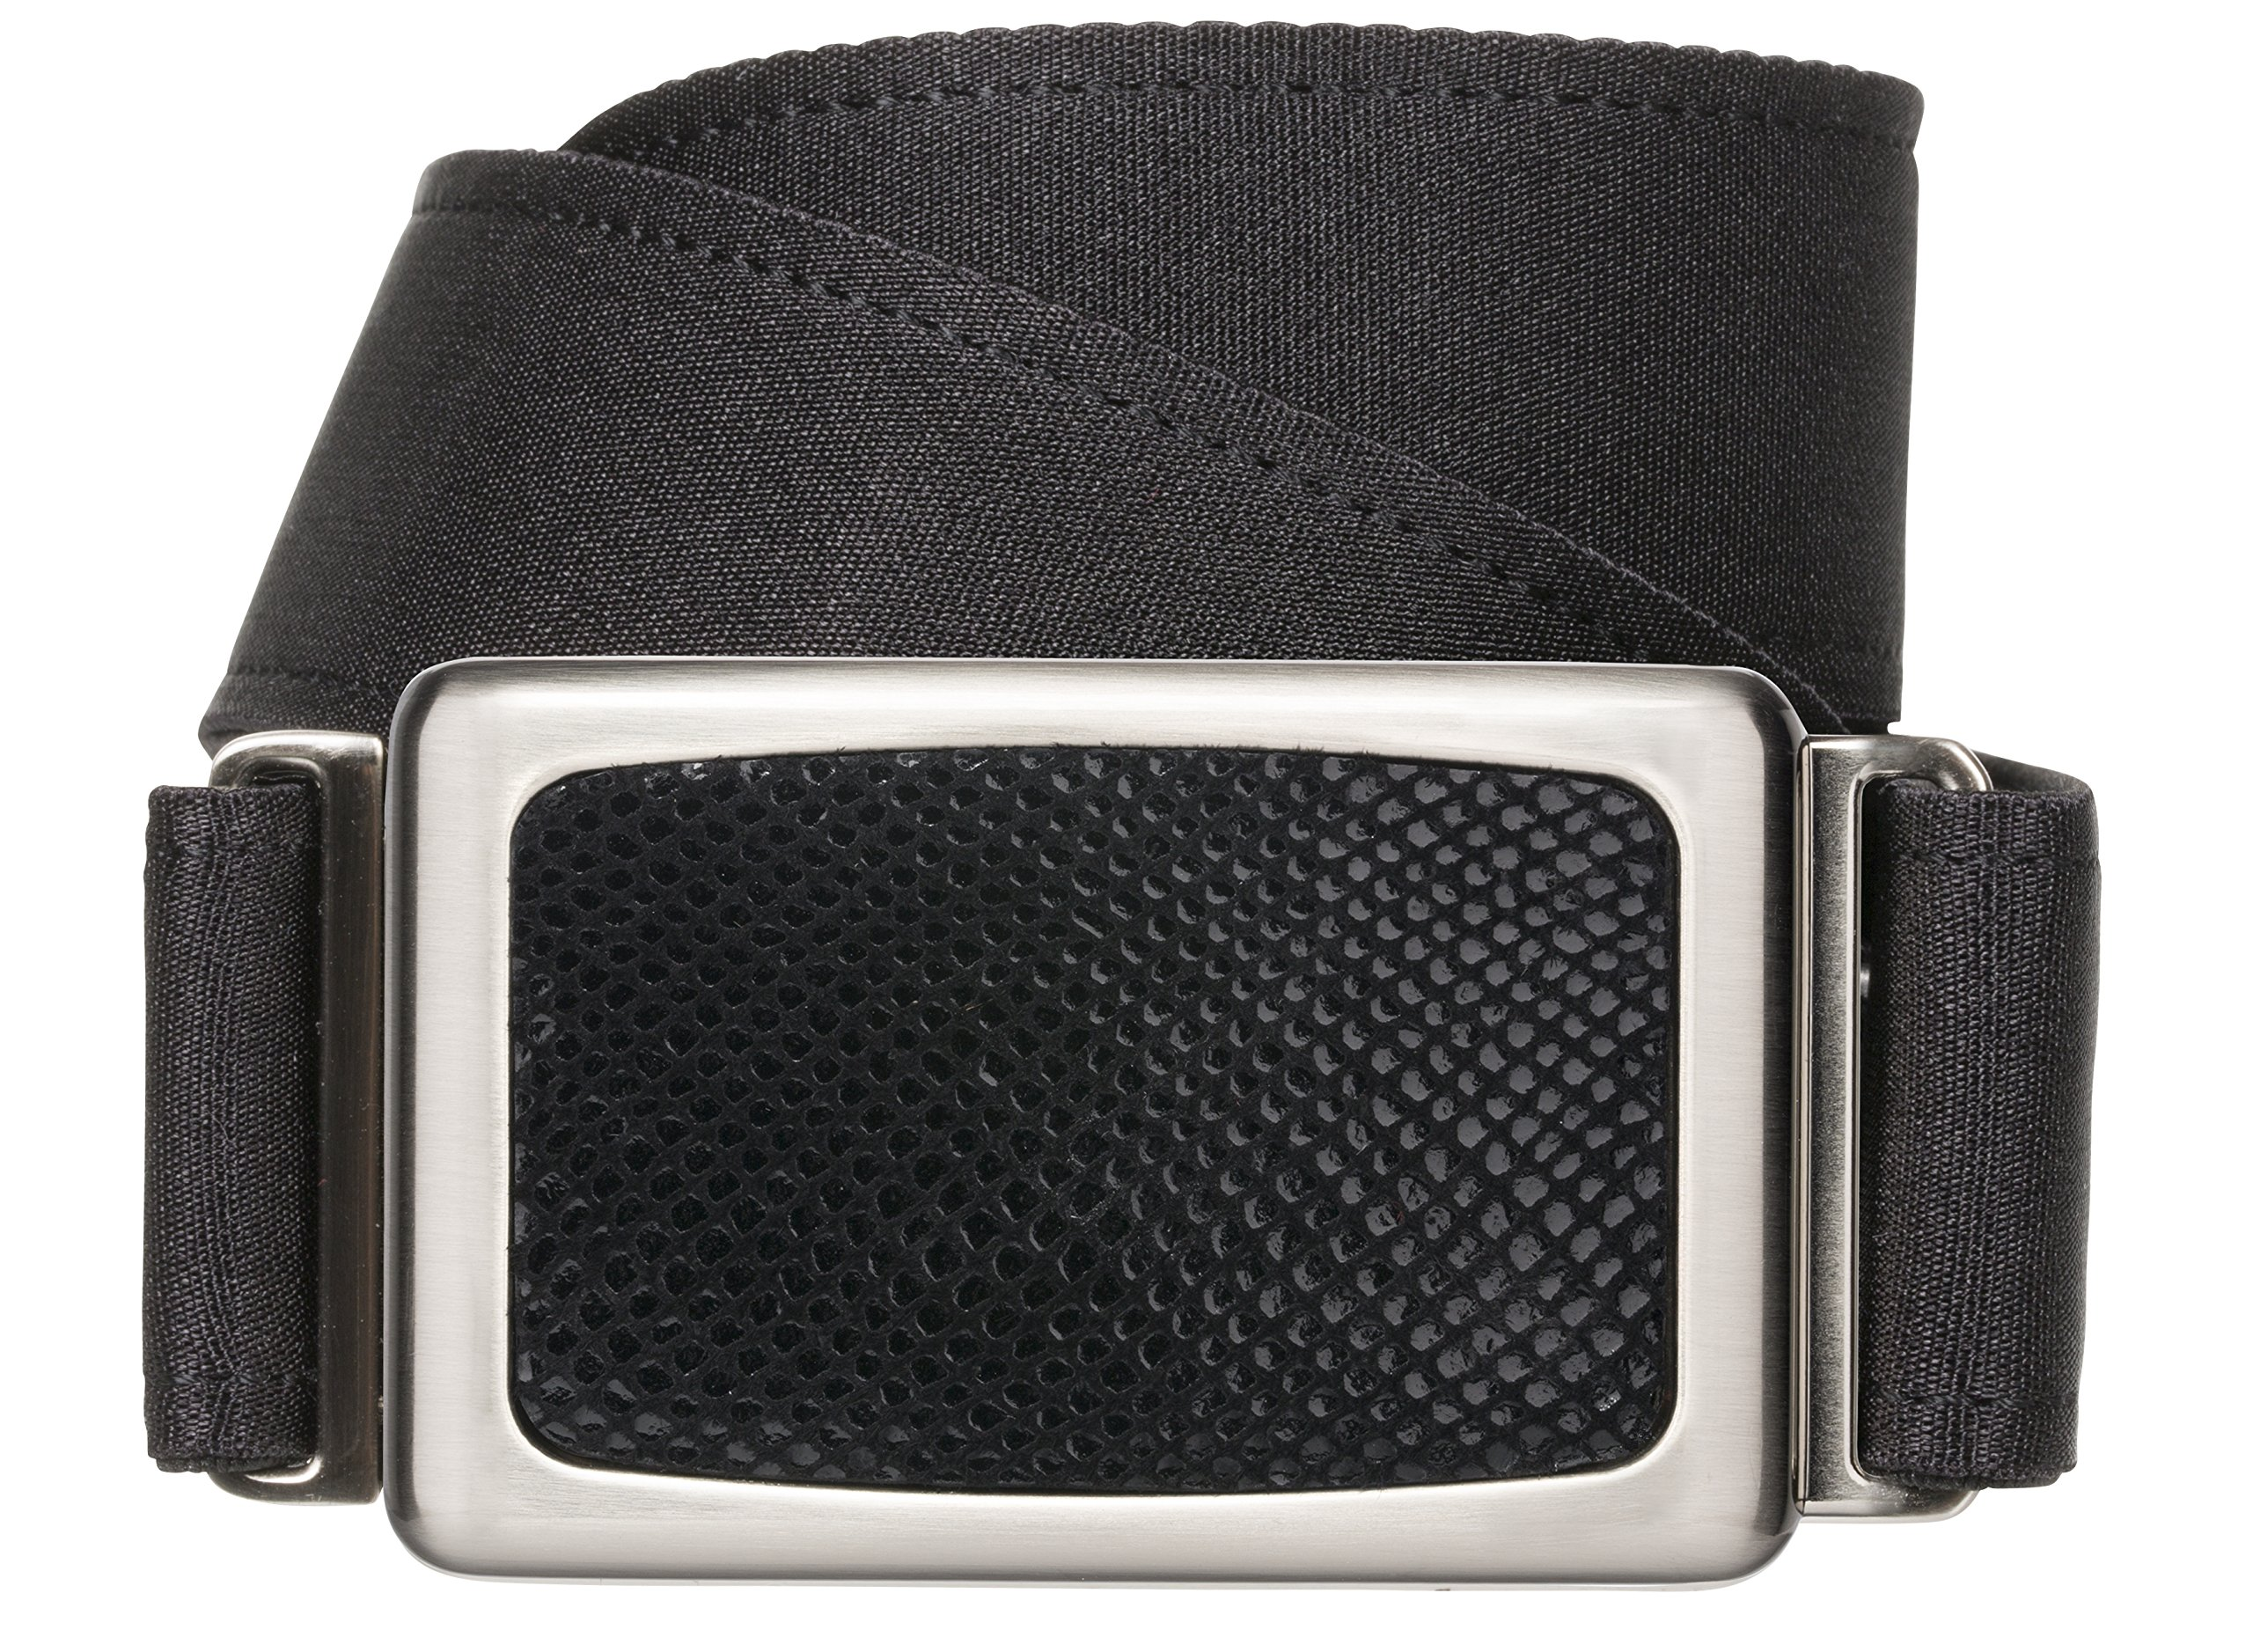 hipsi belt Invisible, Slimming, Hidden, Stretch Flat Belt for Women Medium - Black by hipsi